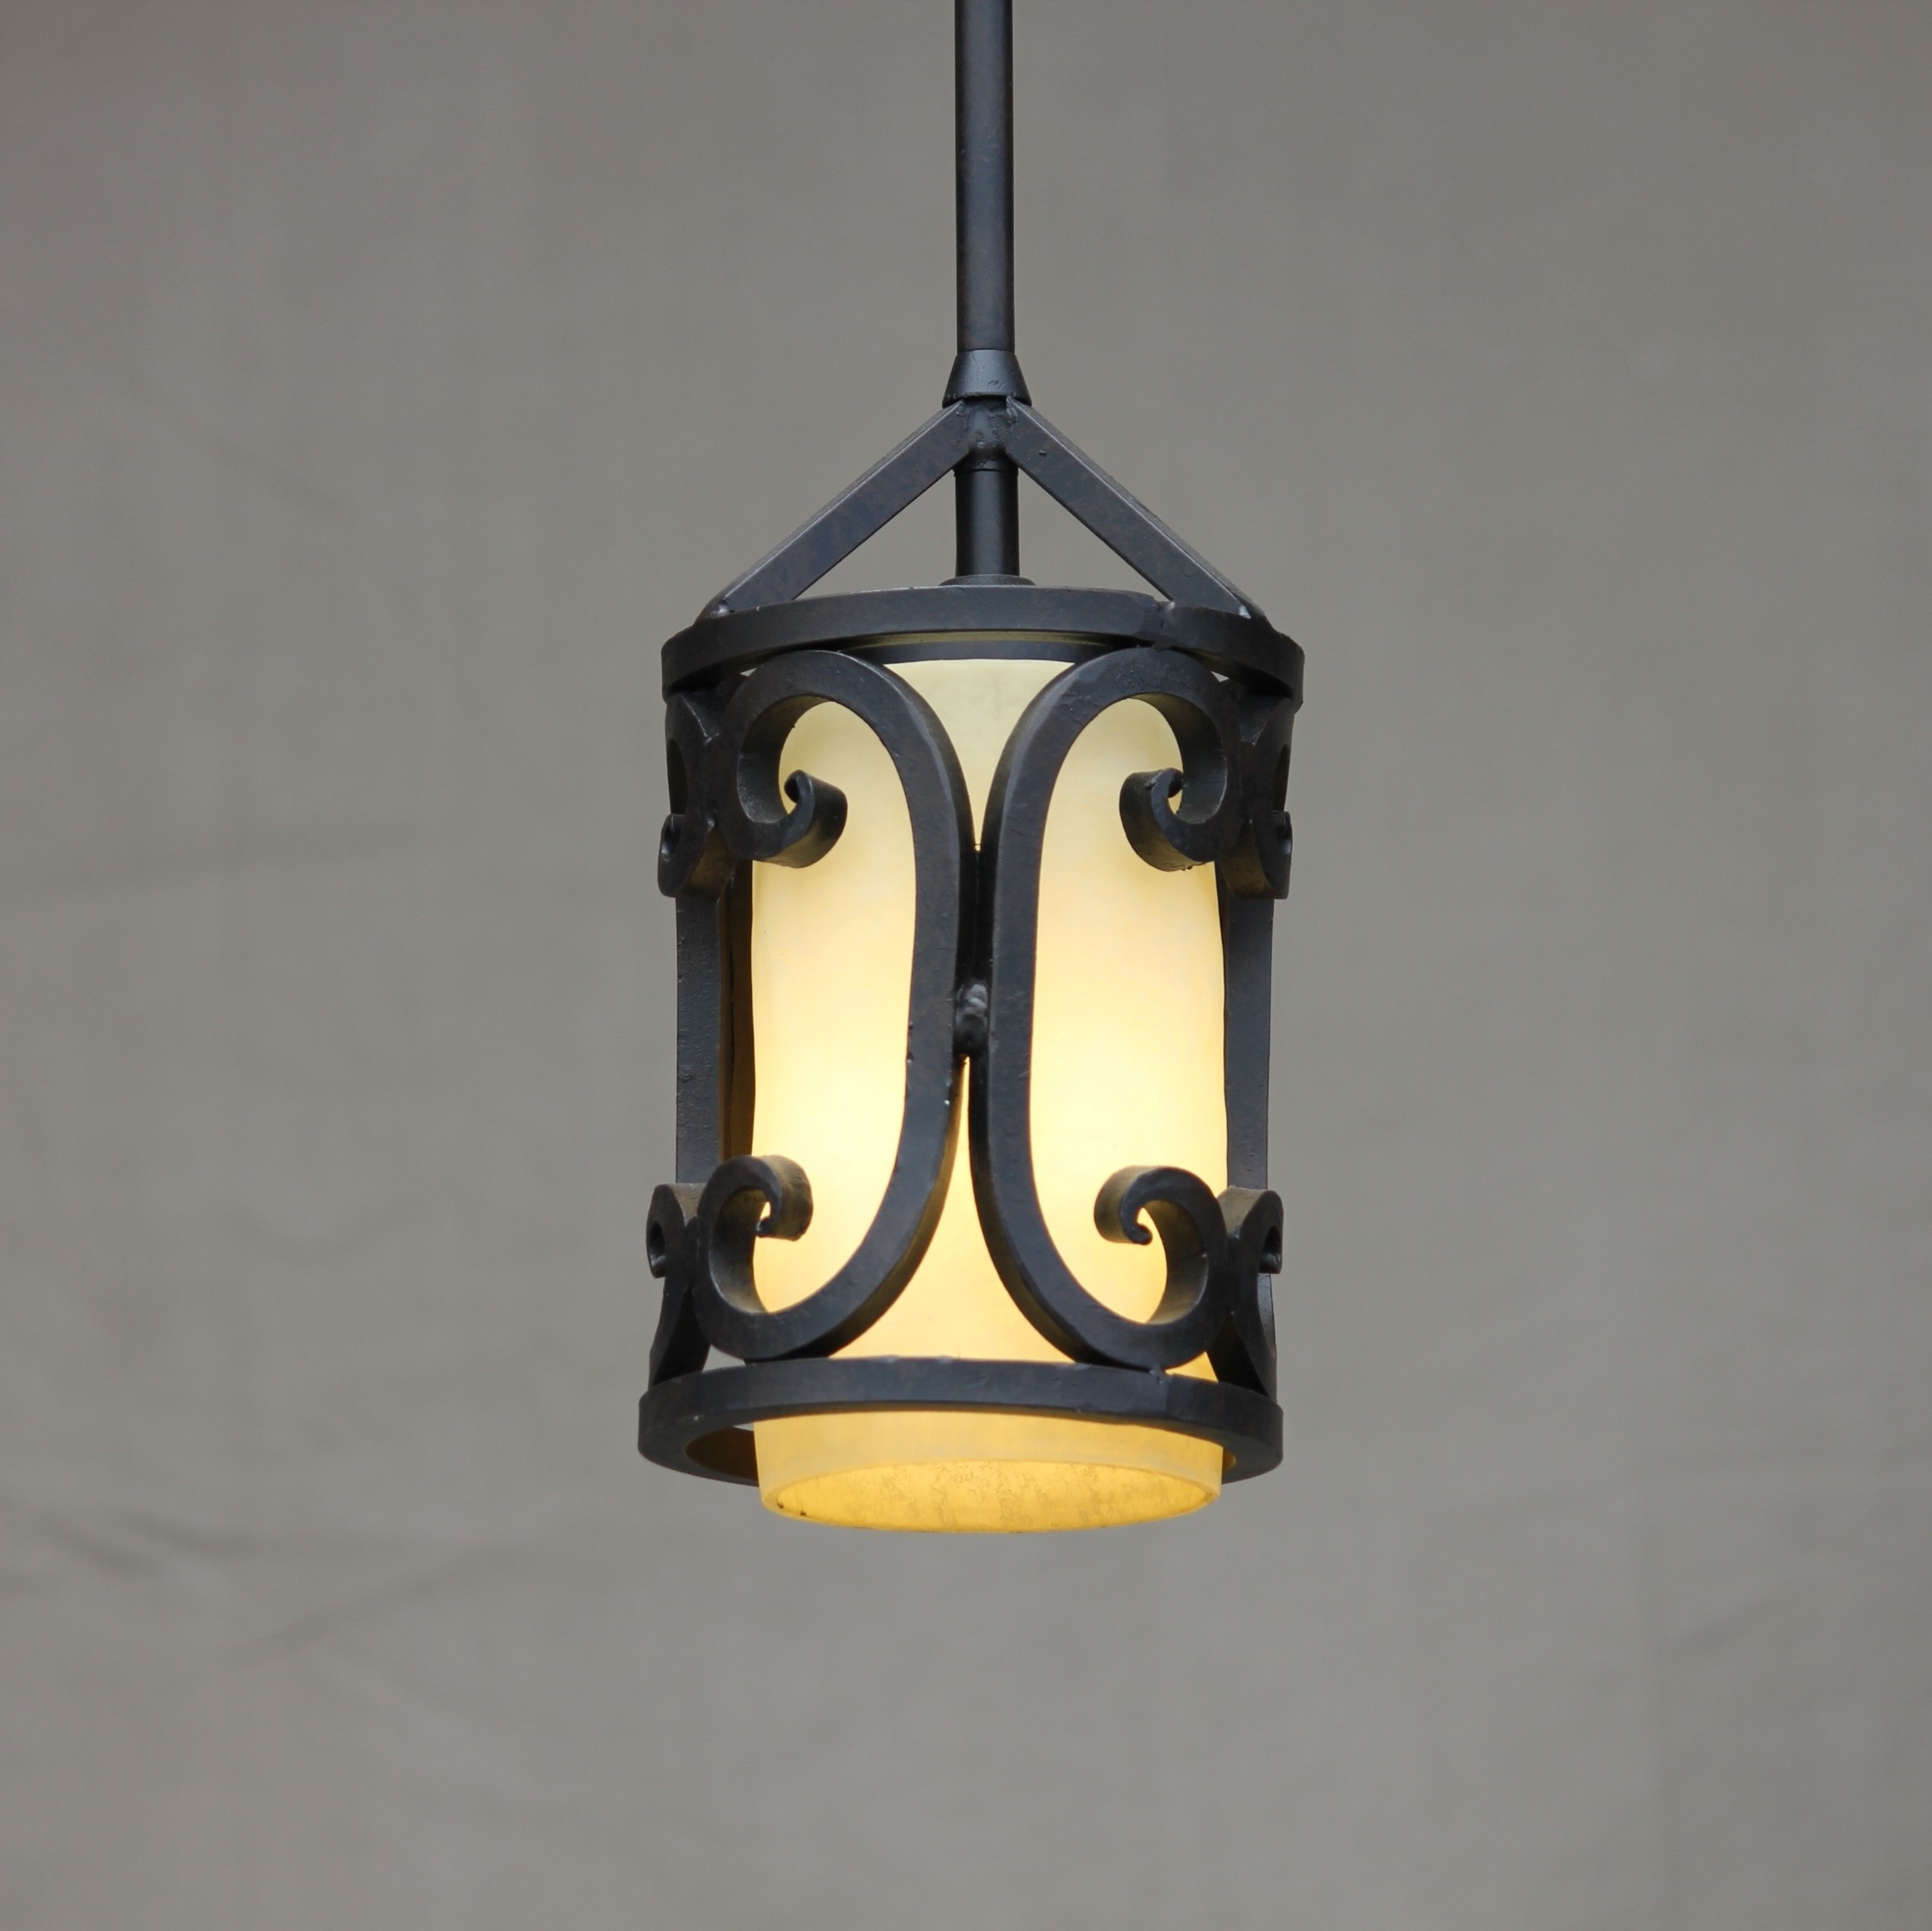 Popular Lights Of Tuscany Mini Pendant Lighting – Ceiling Fixtures – Fixtures Within Outdoor Iron Hanging Lights (Gallery 5 of 20)